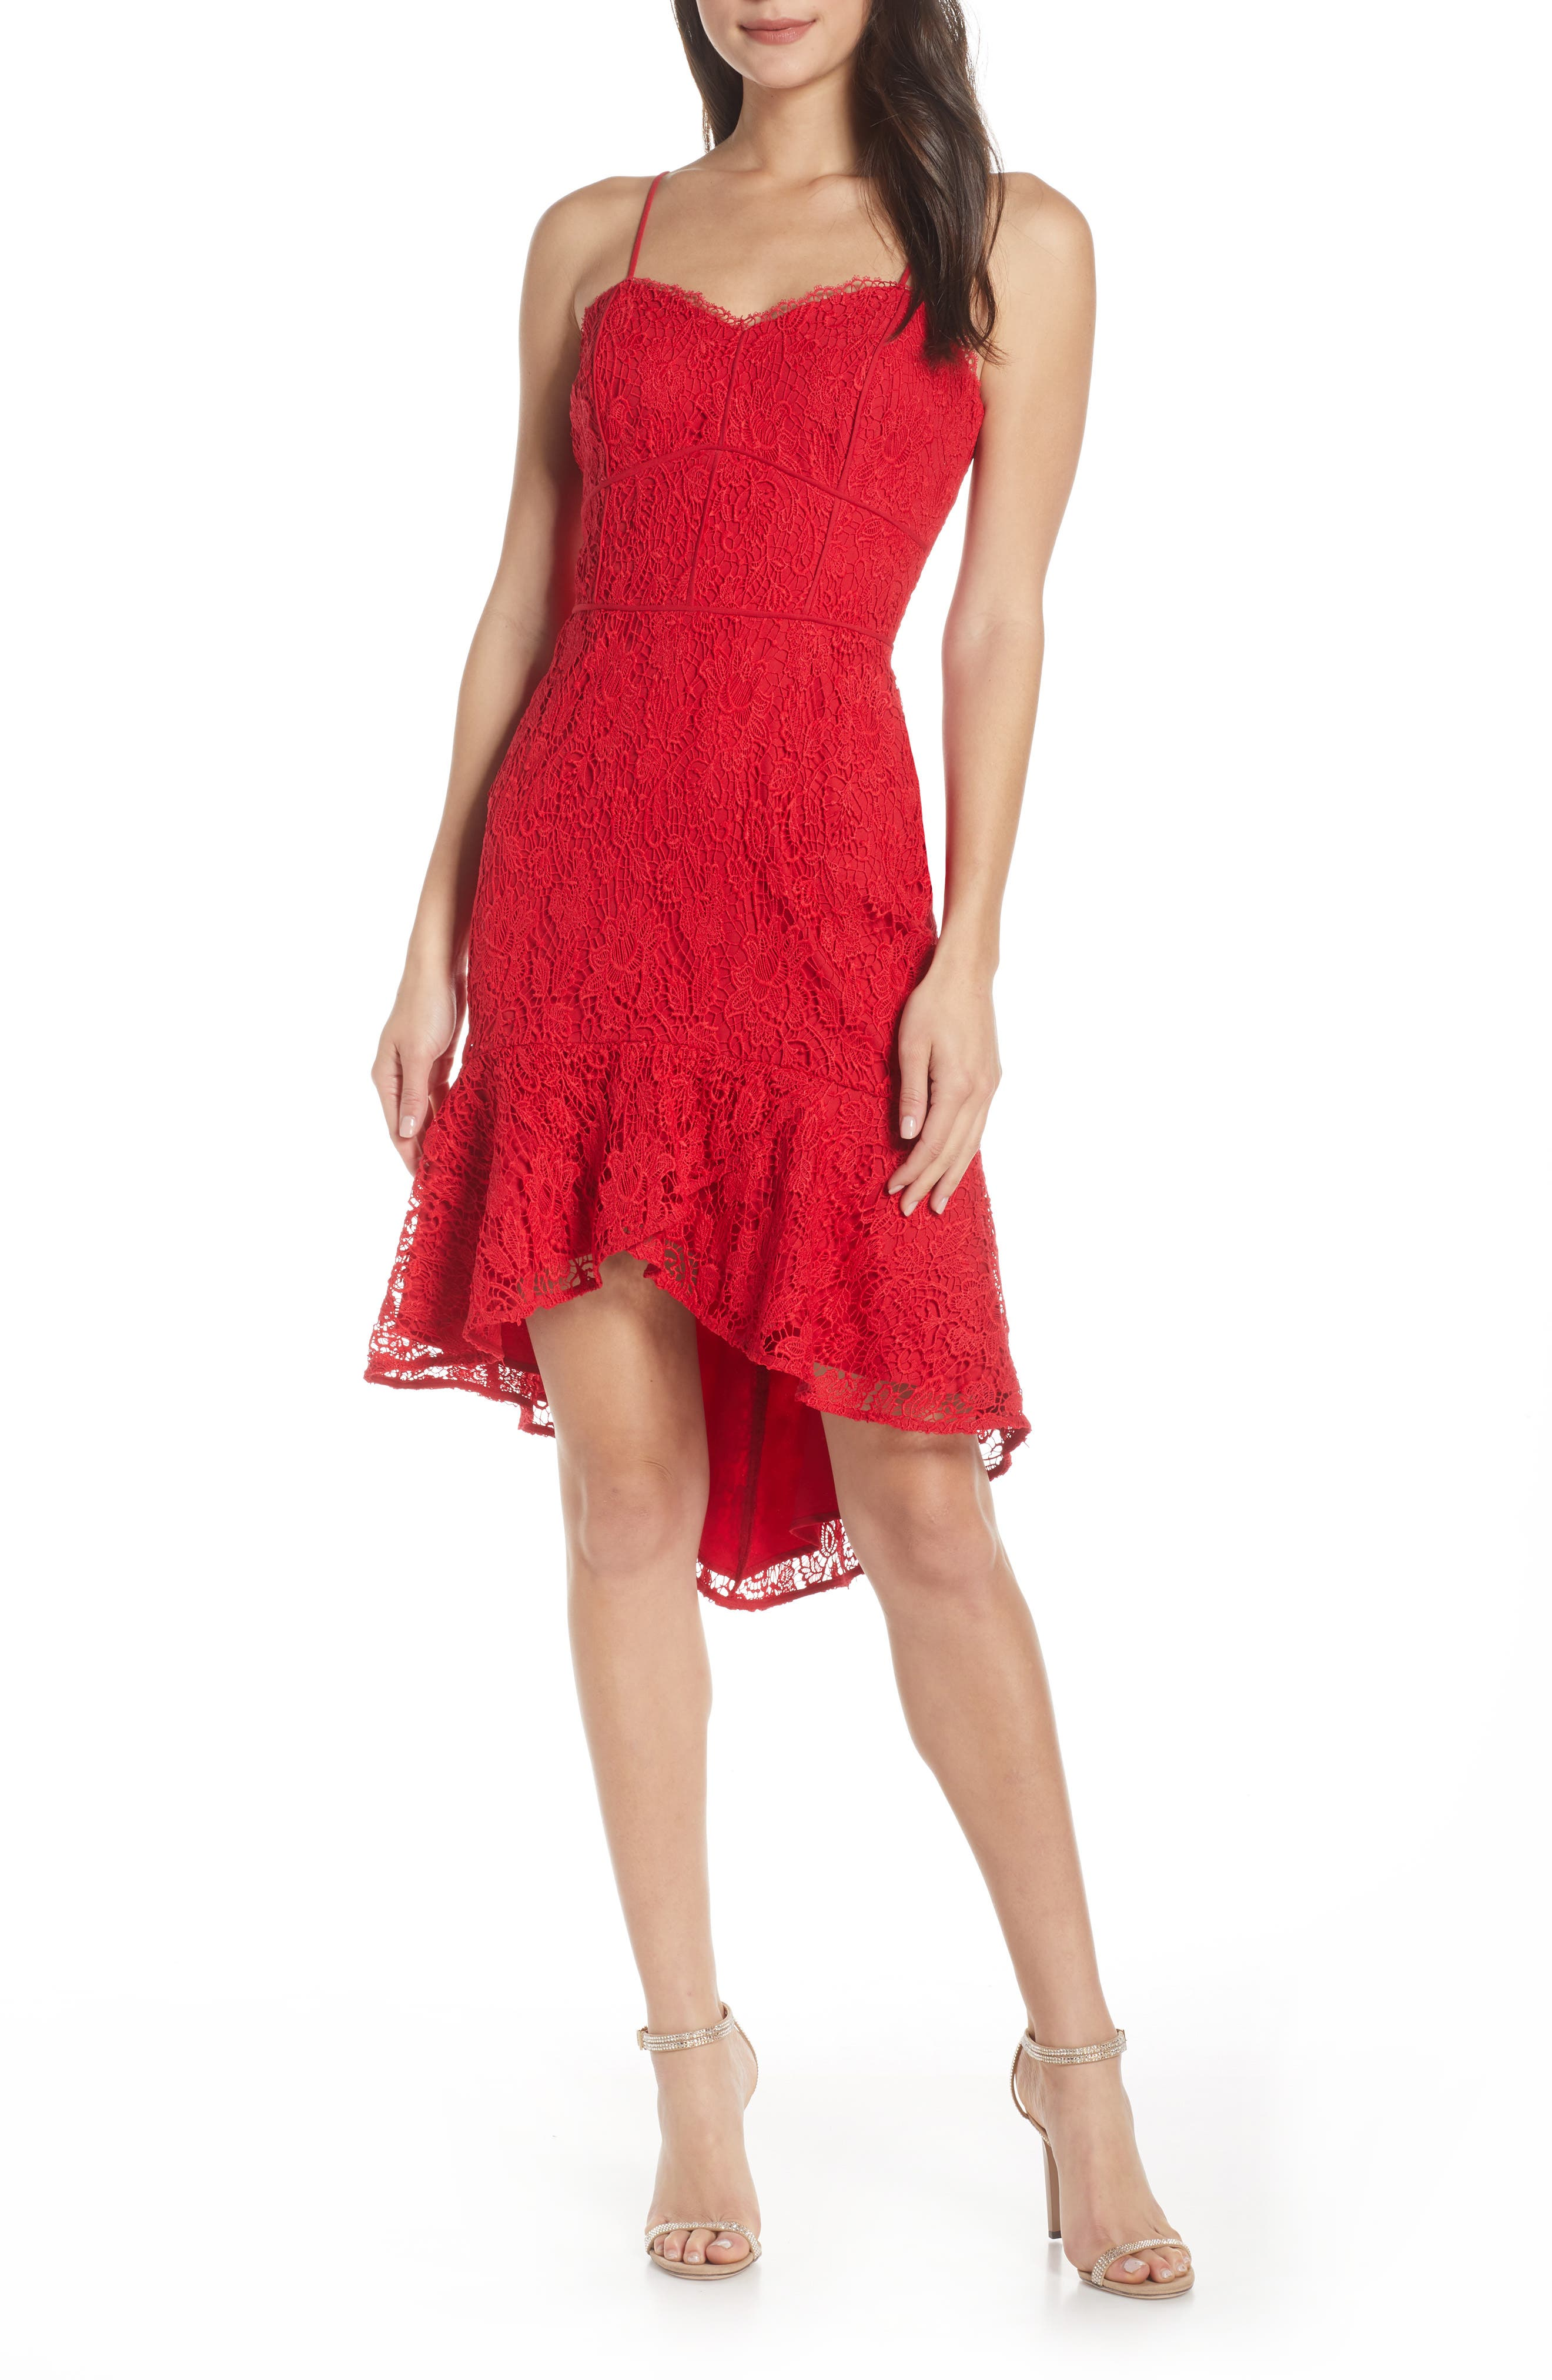 Harlyn Sleeveless Lace High/low Dress, Red